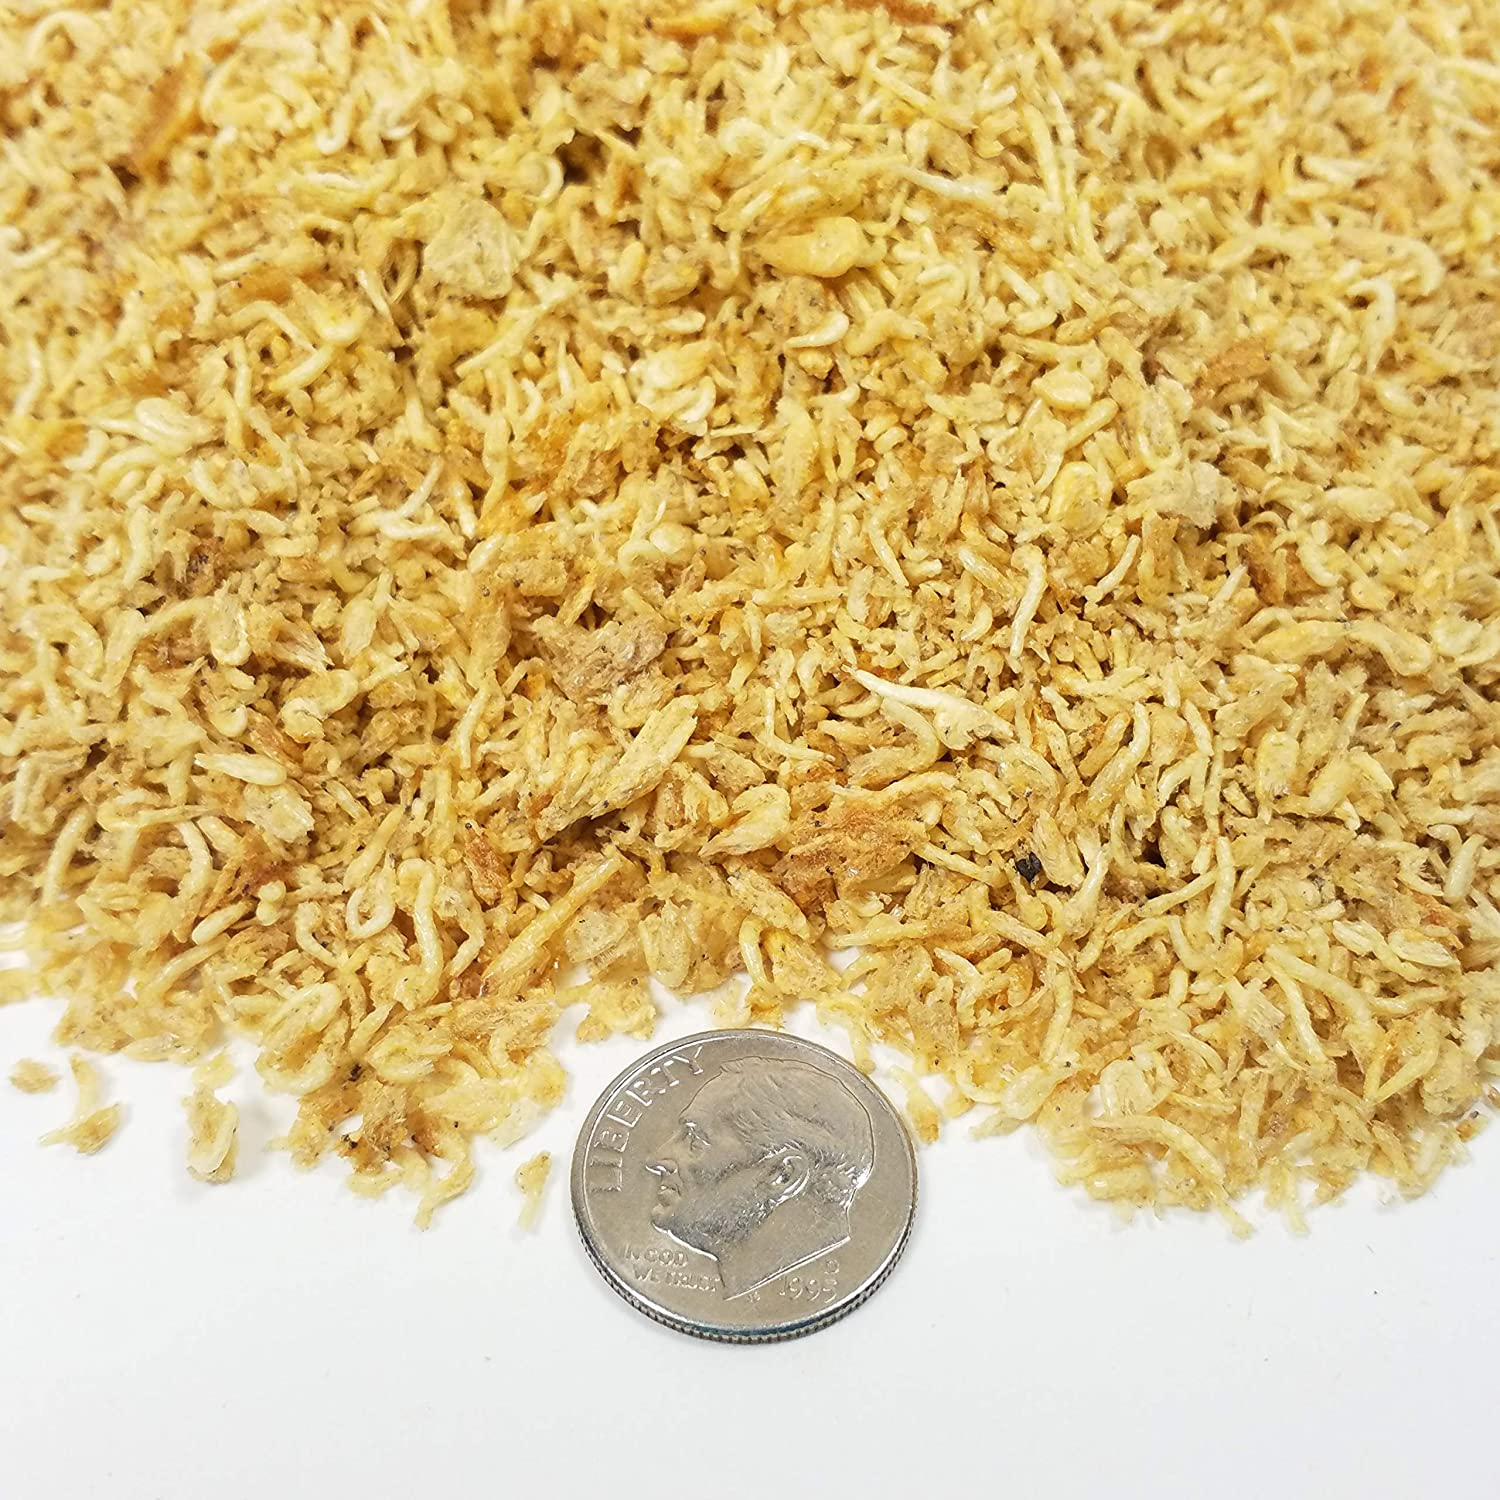 Freeze Dried Mysis Shrimp - Great for All Tropicals and Marines. Aquatic Foods Freeze Dried Tropical Fish Foods